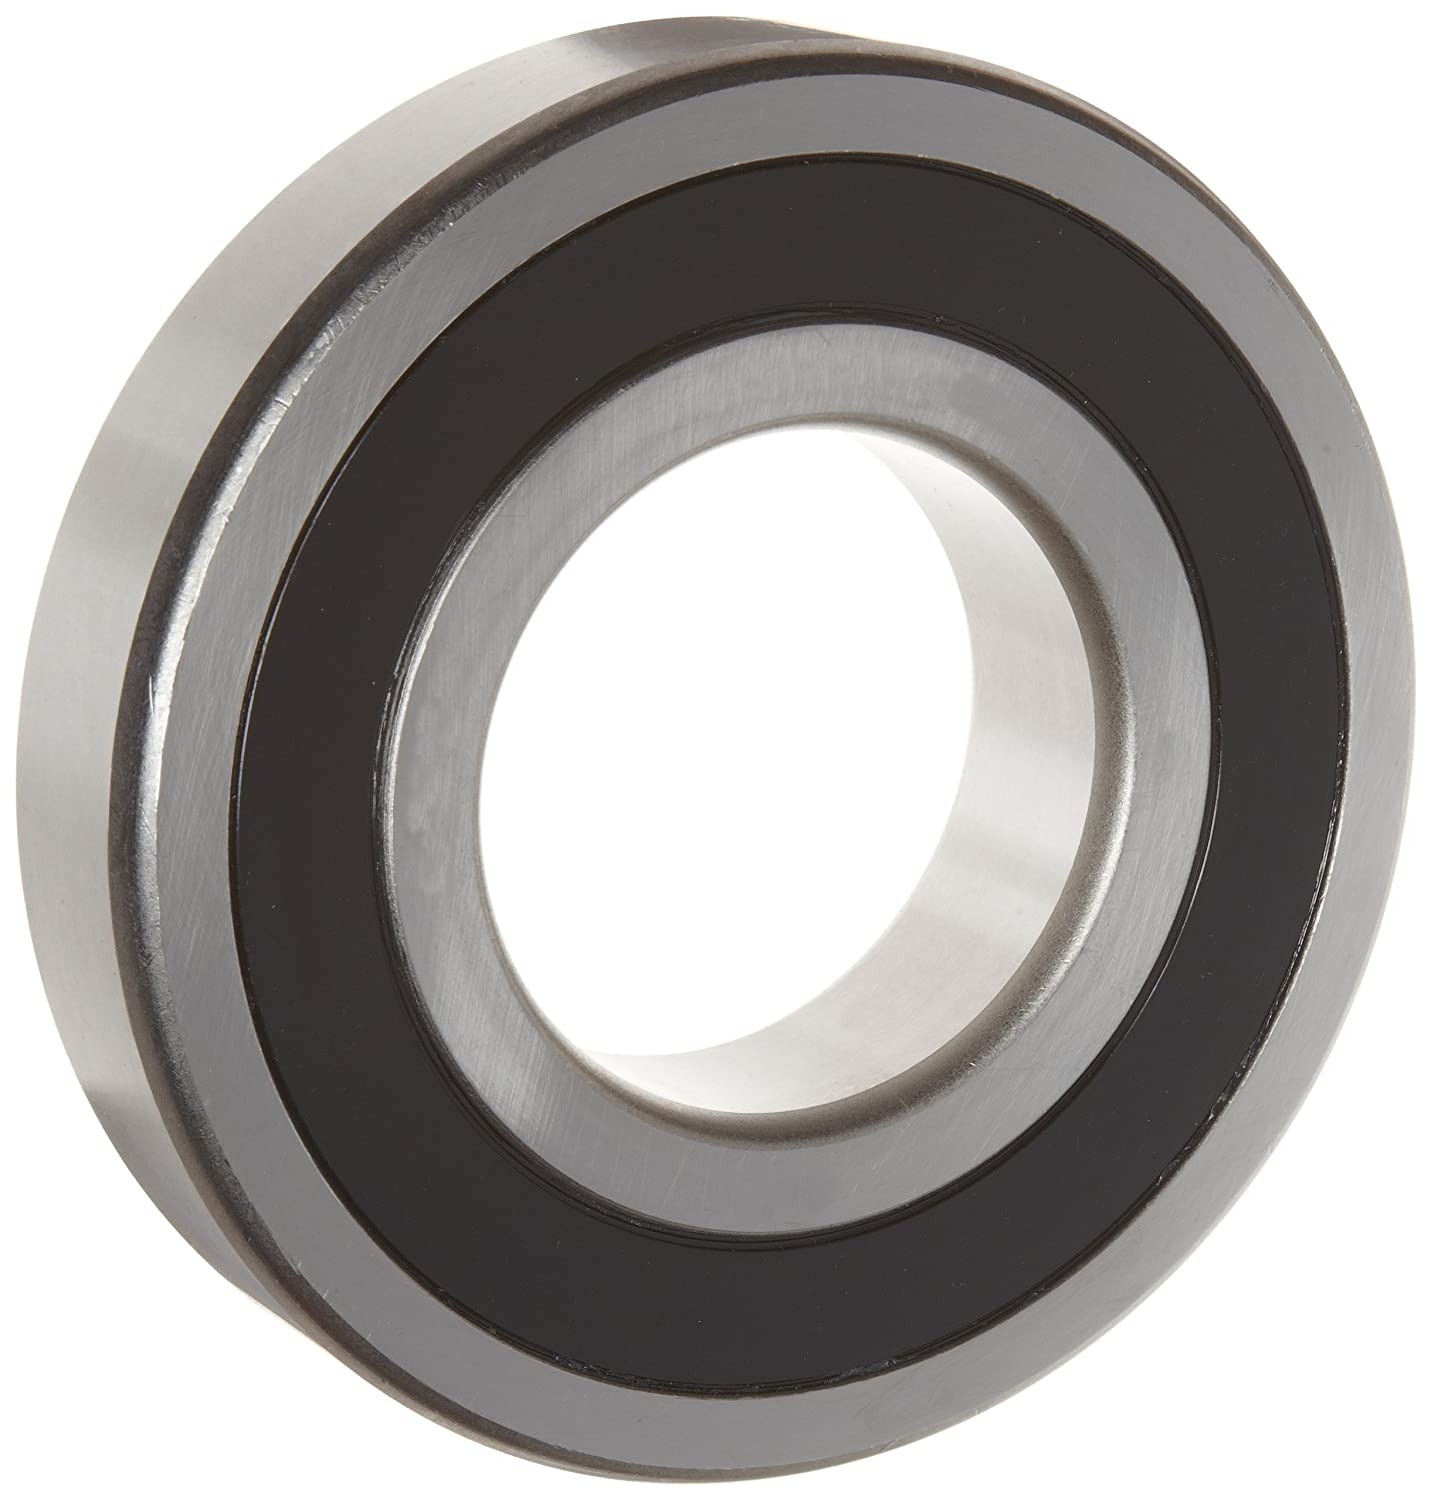 WJB 6304-2RS Deep Groove Ball Bearing, Double Sealed, Metric, 20mm ID, 52mm OD, 15mm Width, 3600lbf Dynamic Load Capacity, 1770lbf Static Load Capacity